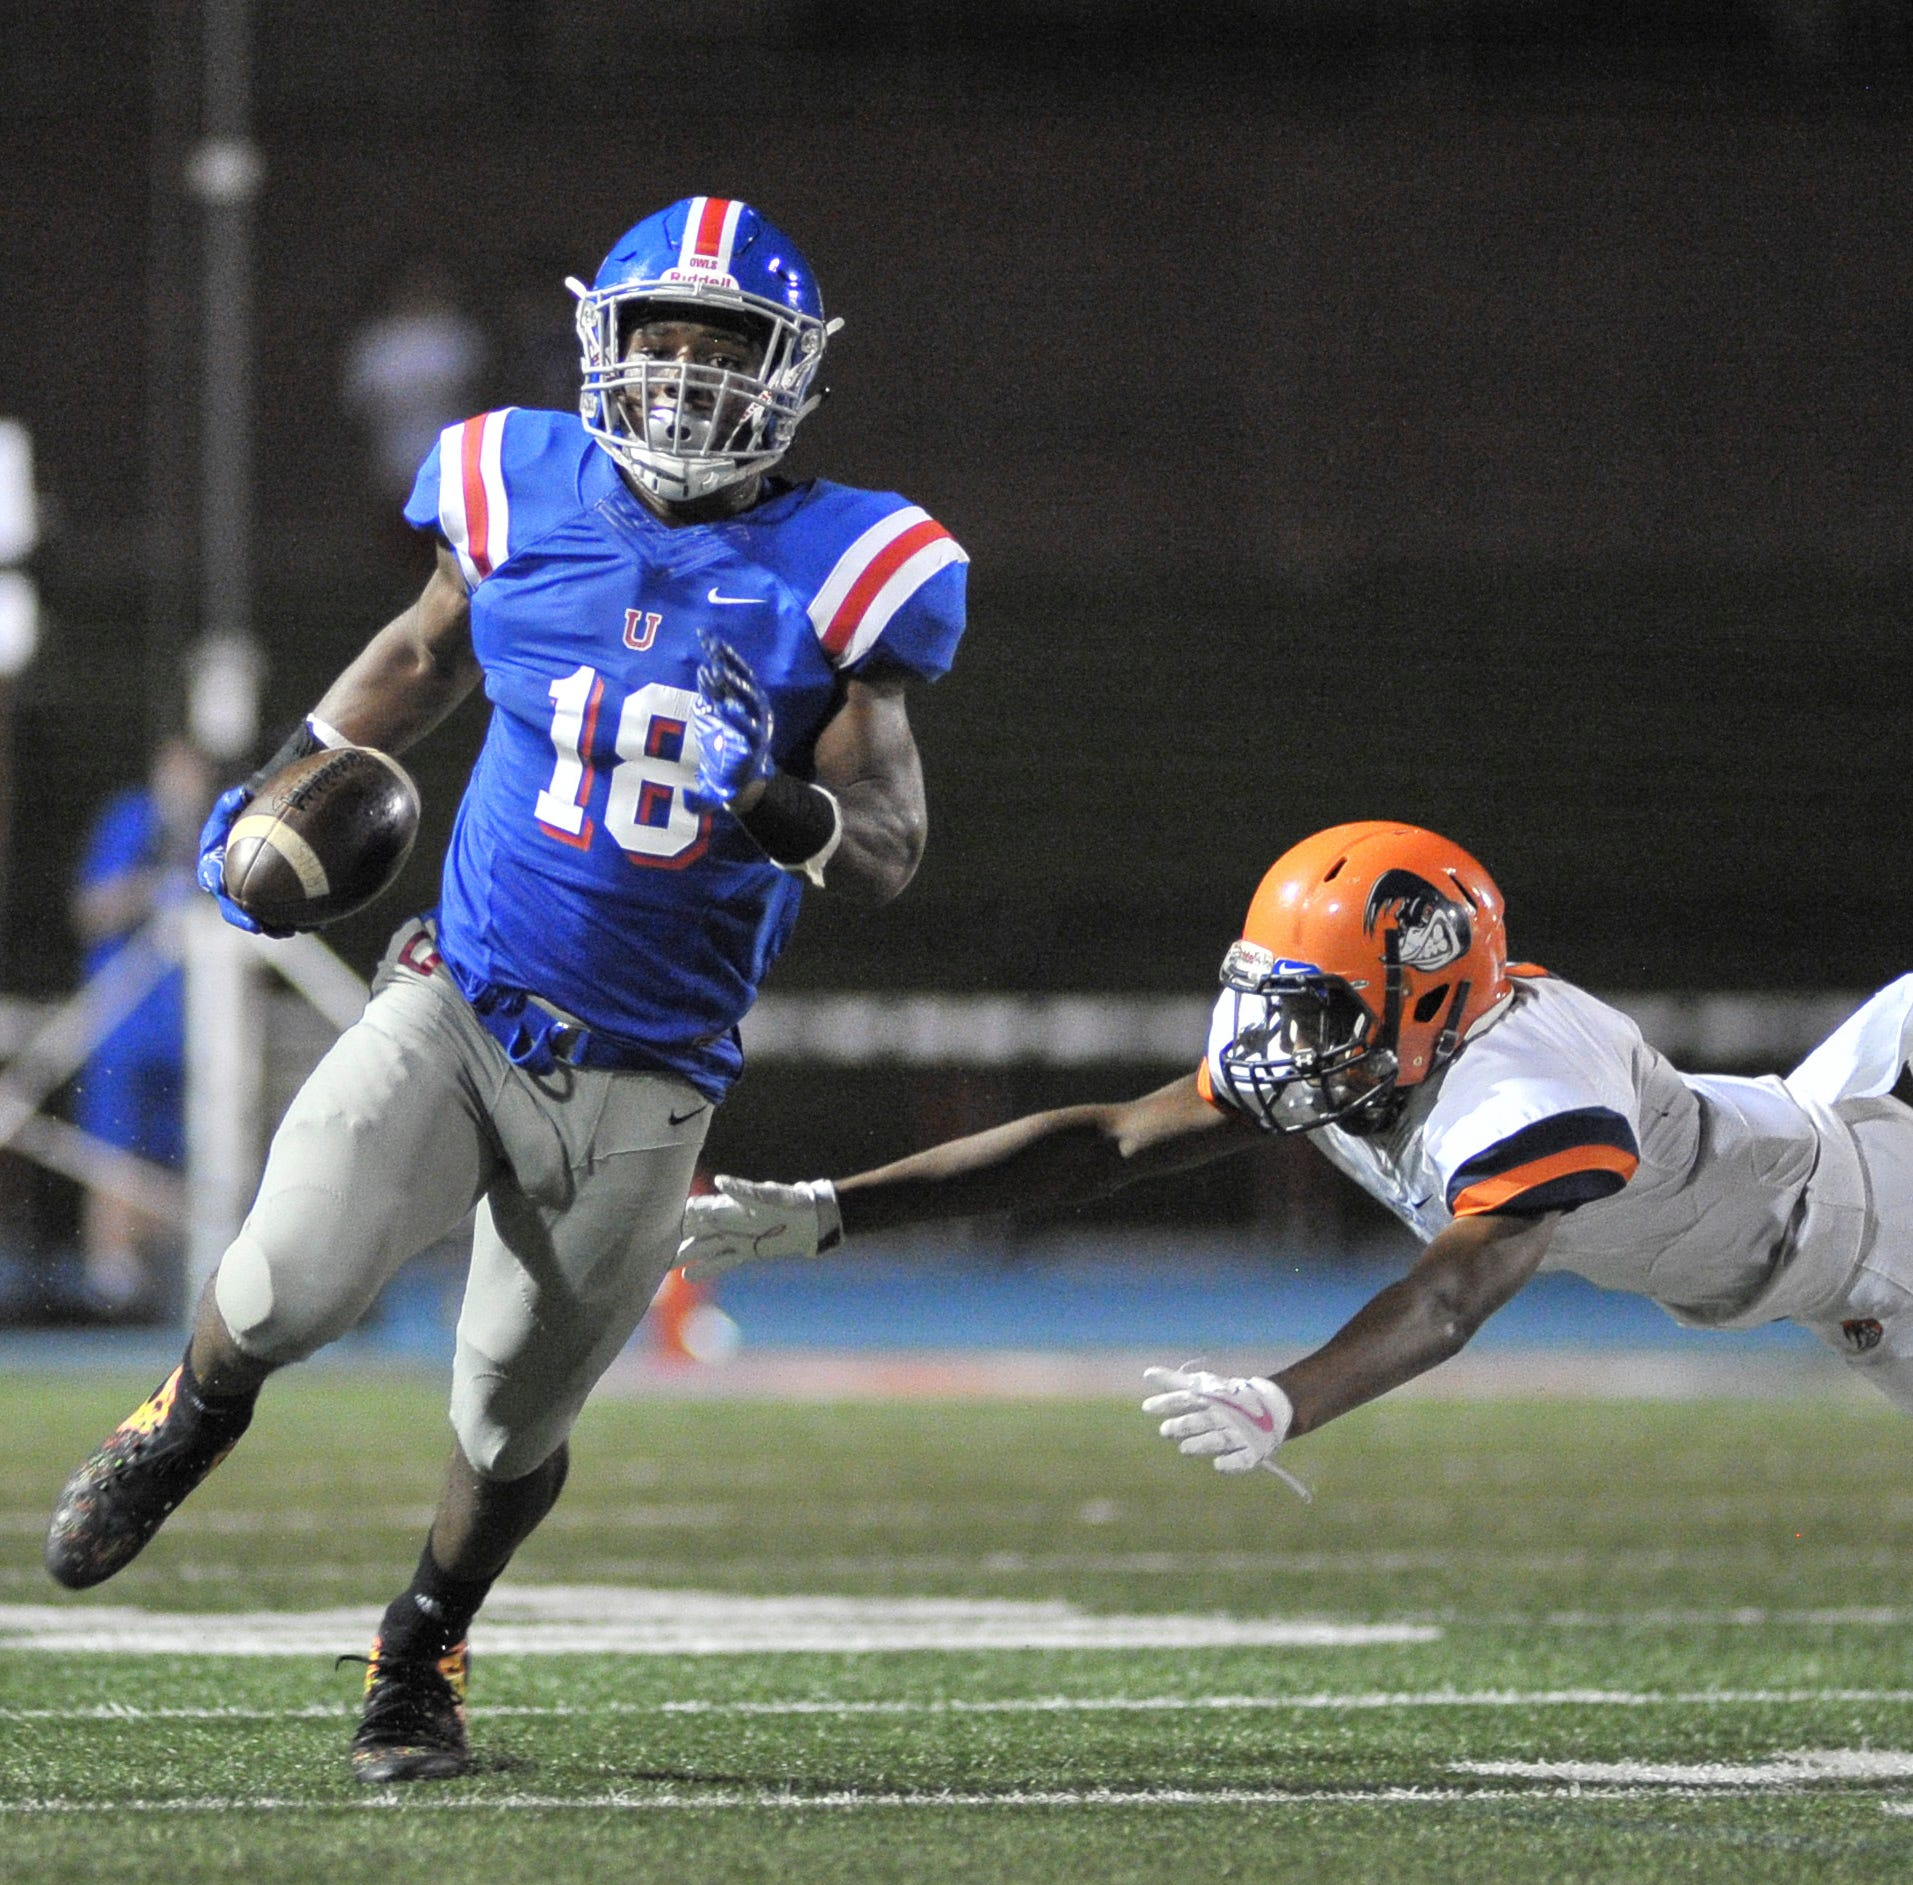 LSU commit Maurice Hampton wasn't the only MUS star in season-opening win